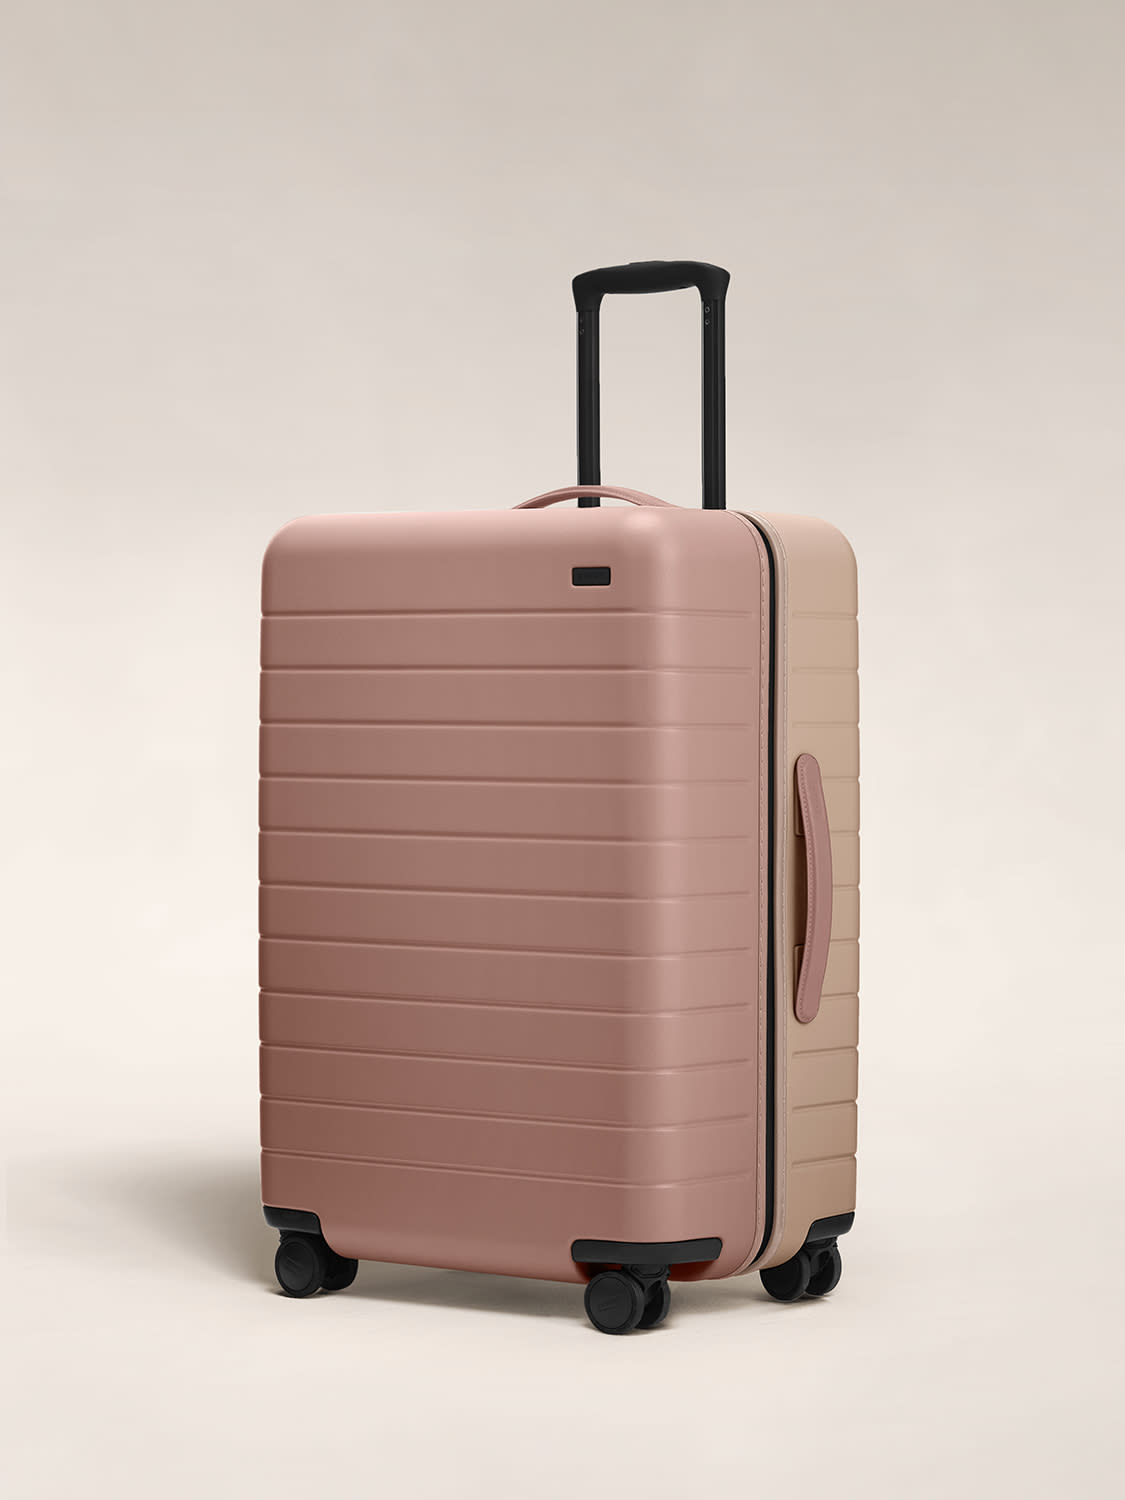 Angled view of the Medium hardside suitcase in Dusty Rose/ Taupe